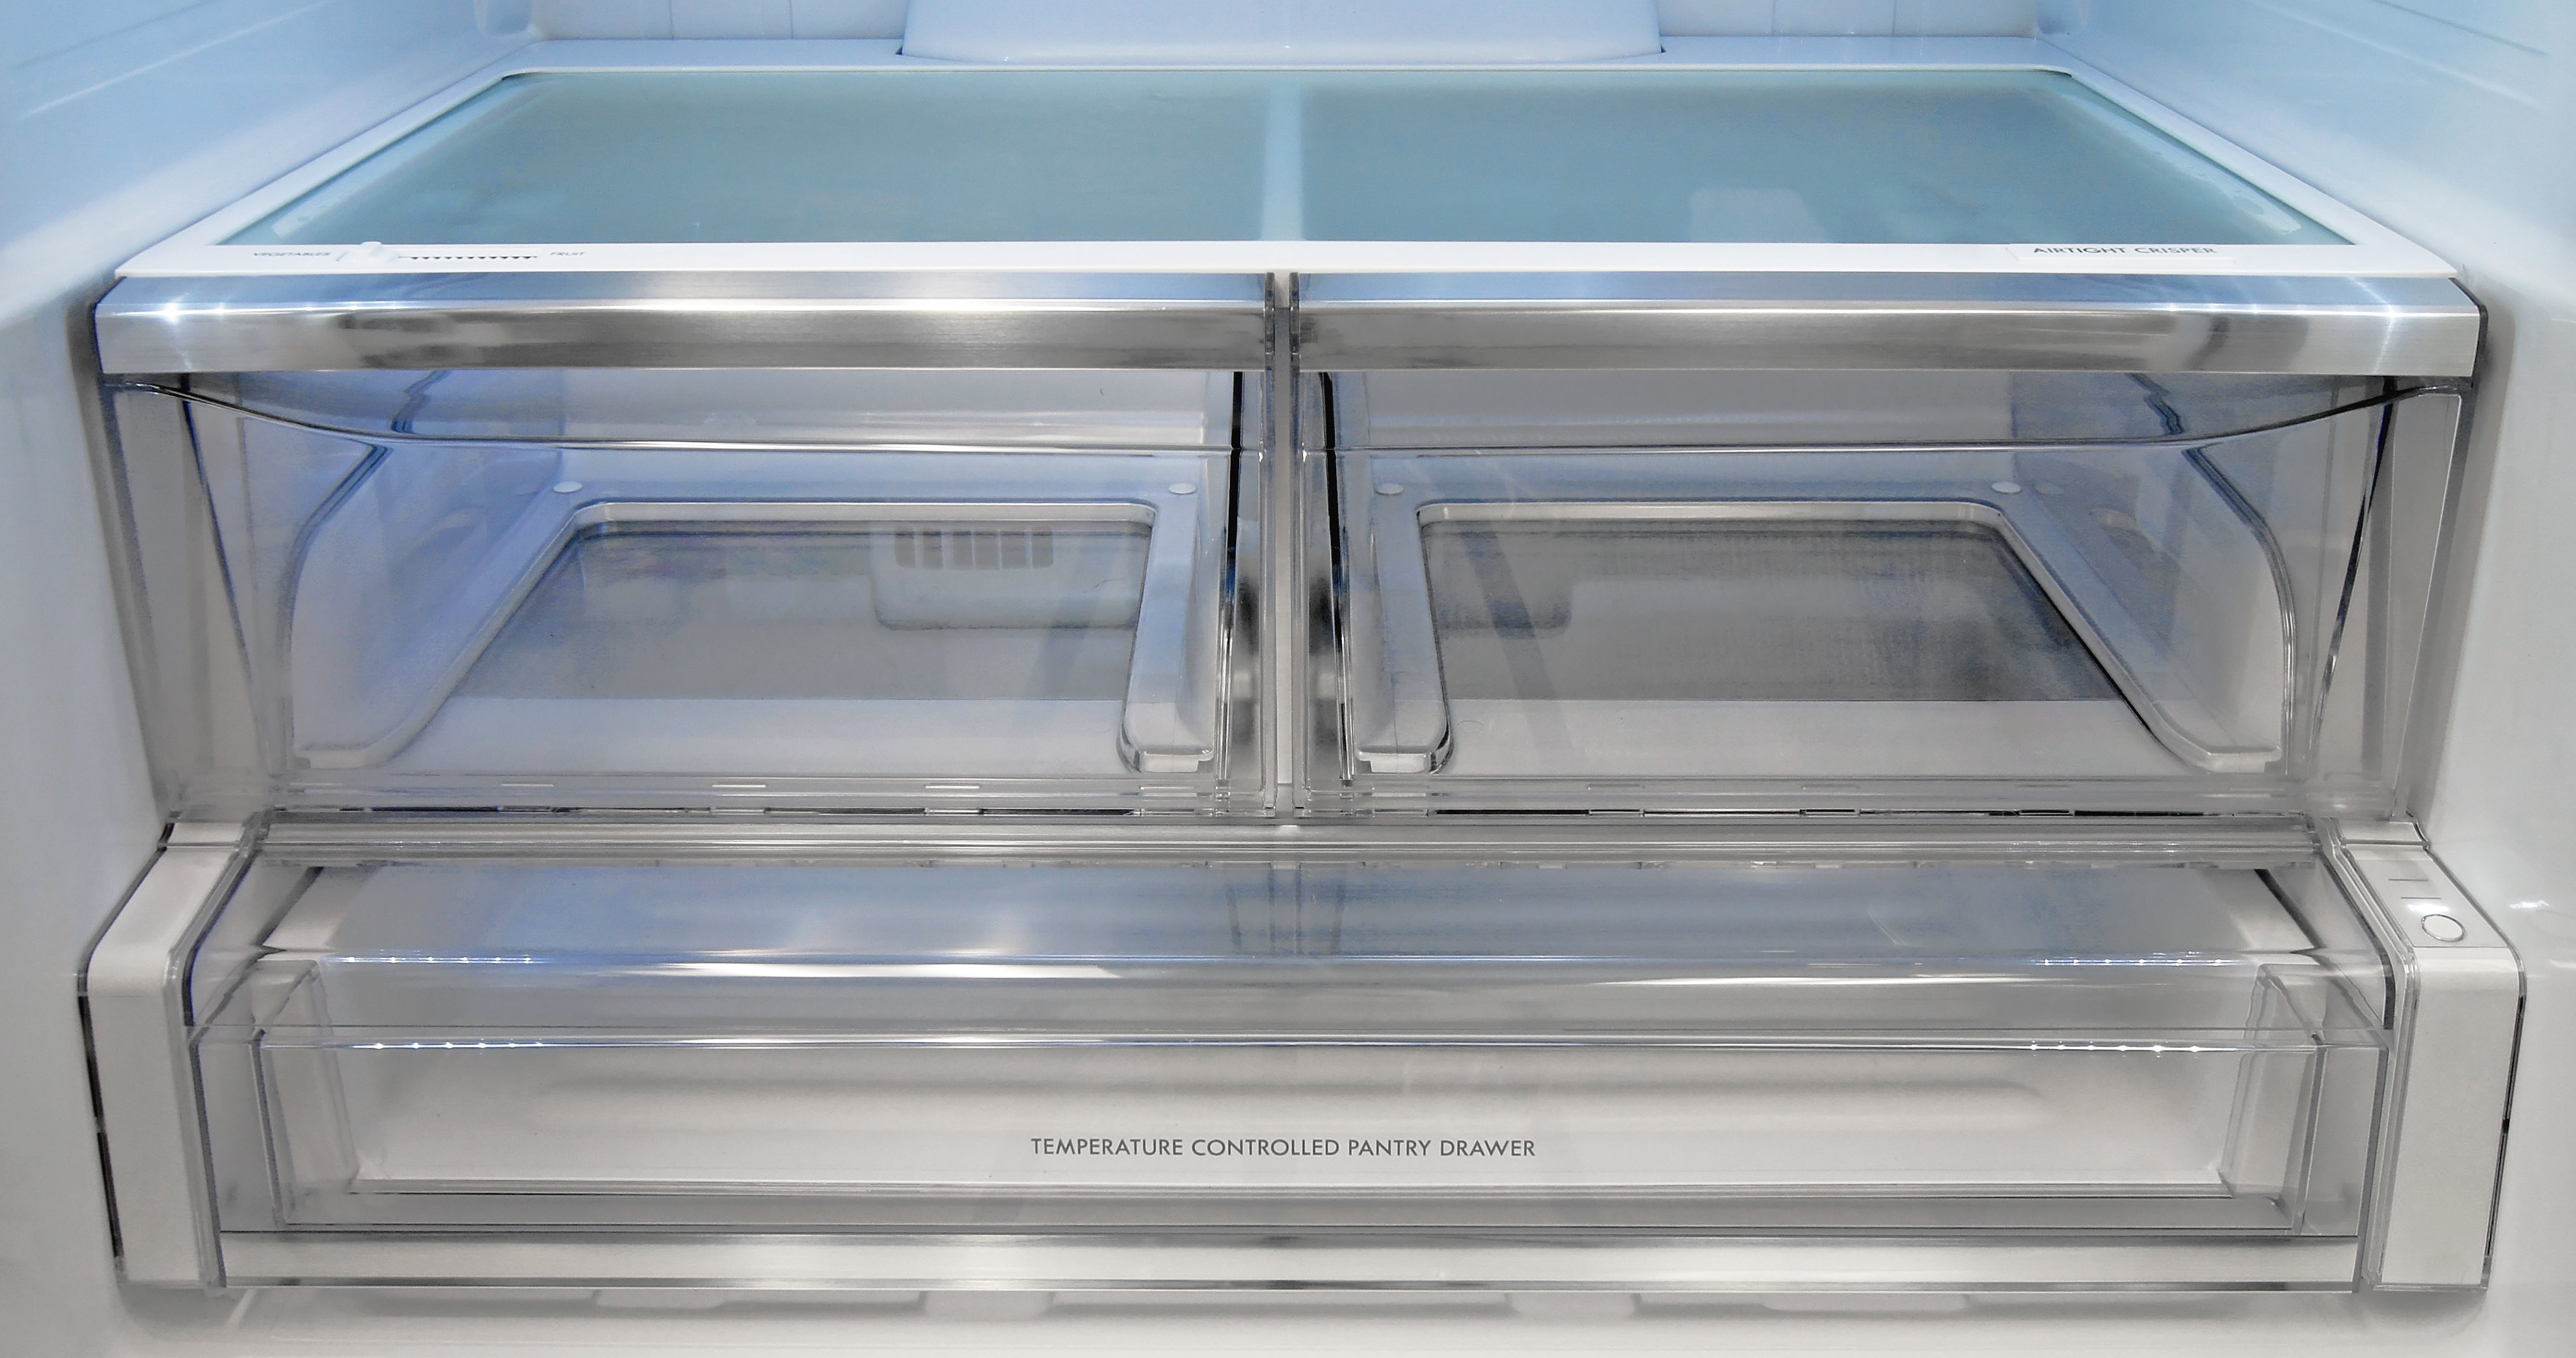 The Kenmore Elite 74025's left drawer is a standard crisper, while the right one has a special airtight design. The lower drawer also provides three distinct temperature settings.